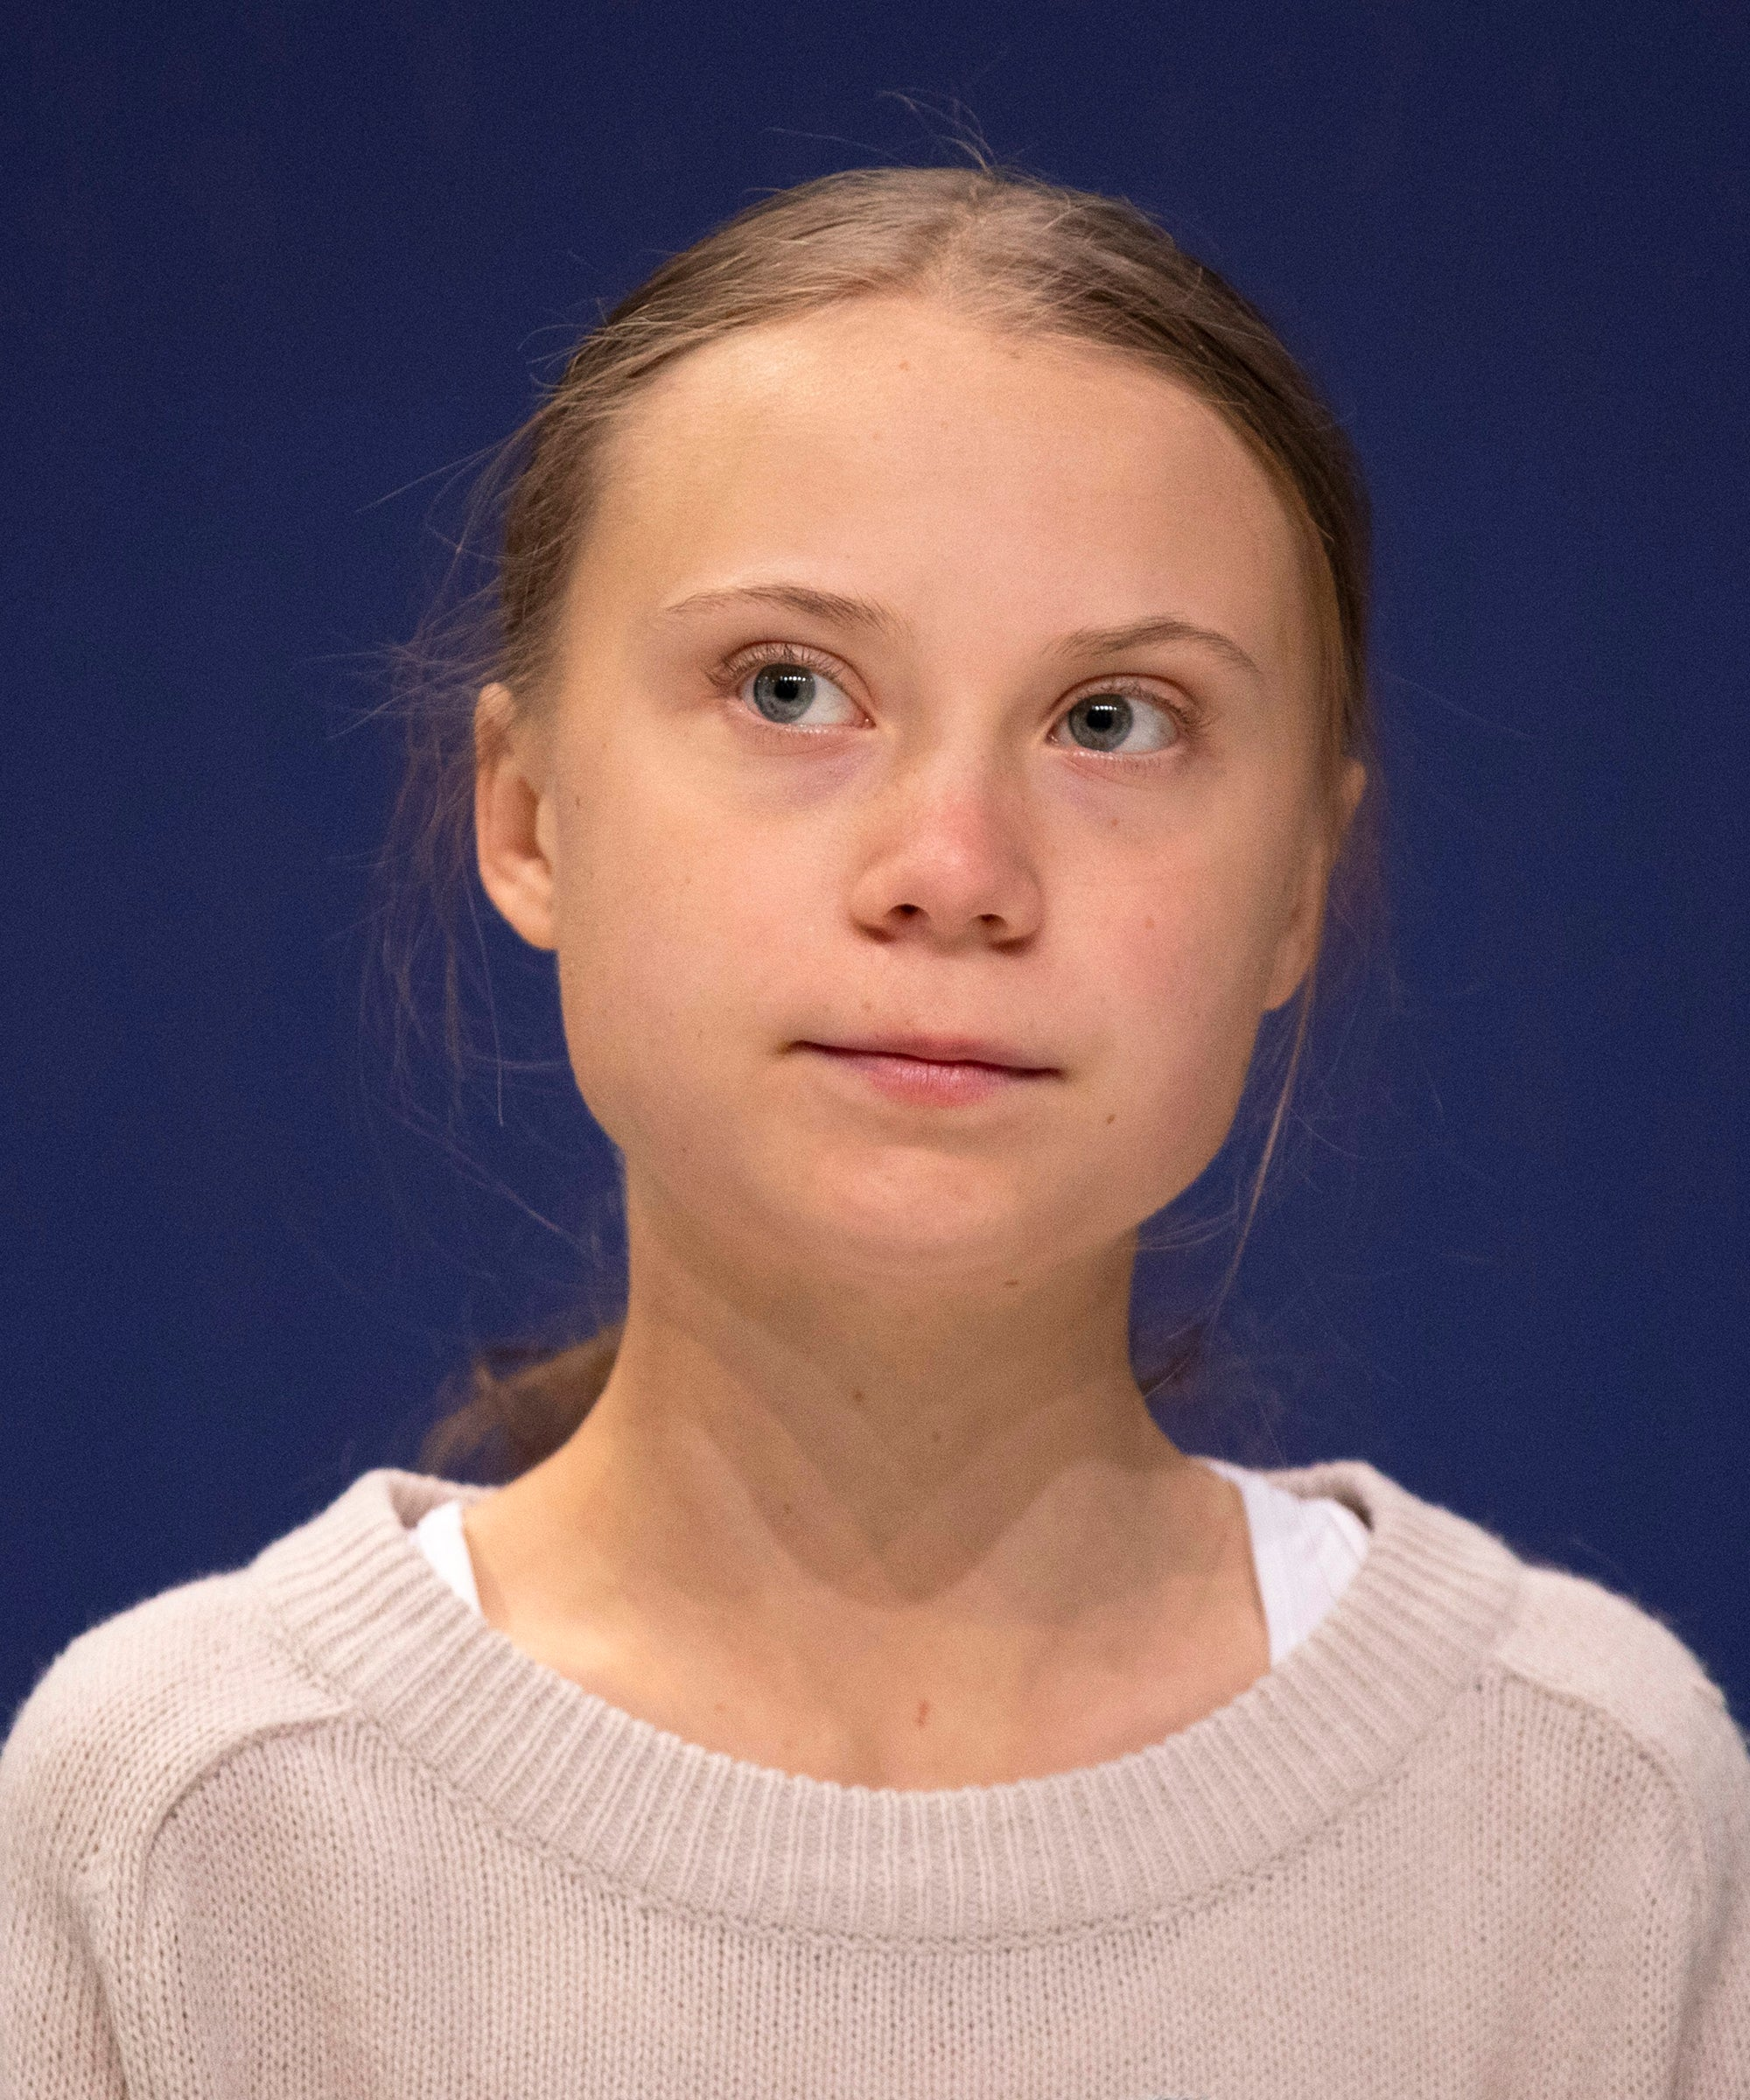 Greta Thunberg Is Youngest Time Person Of The Year Ever